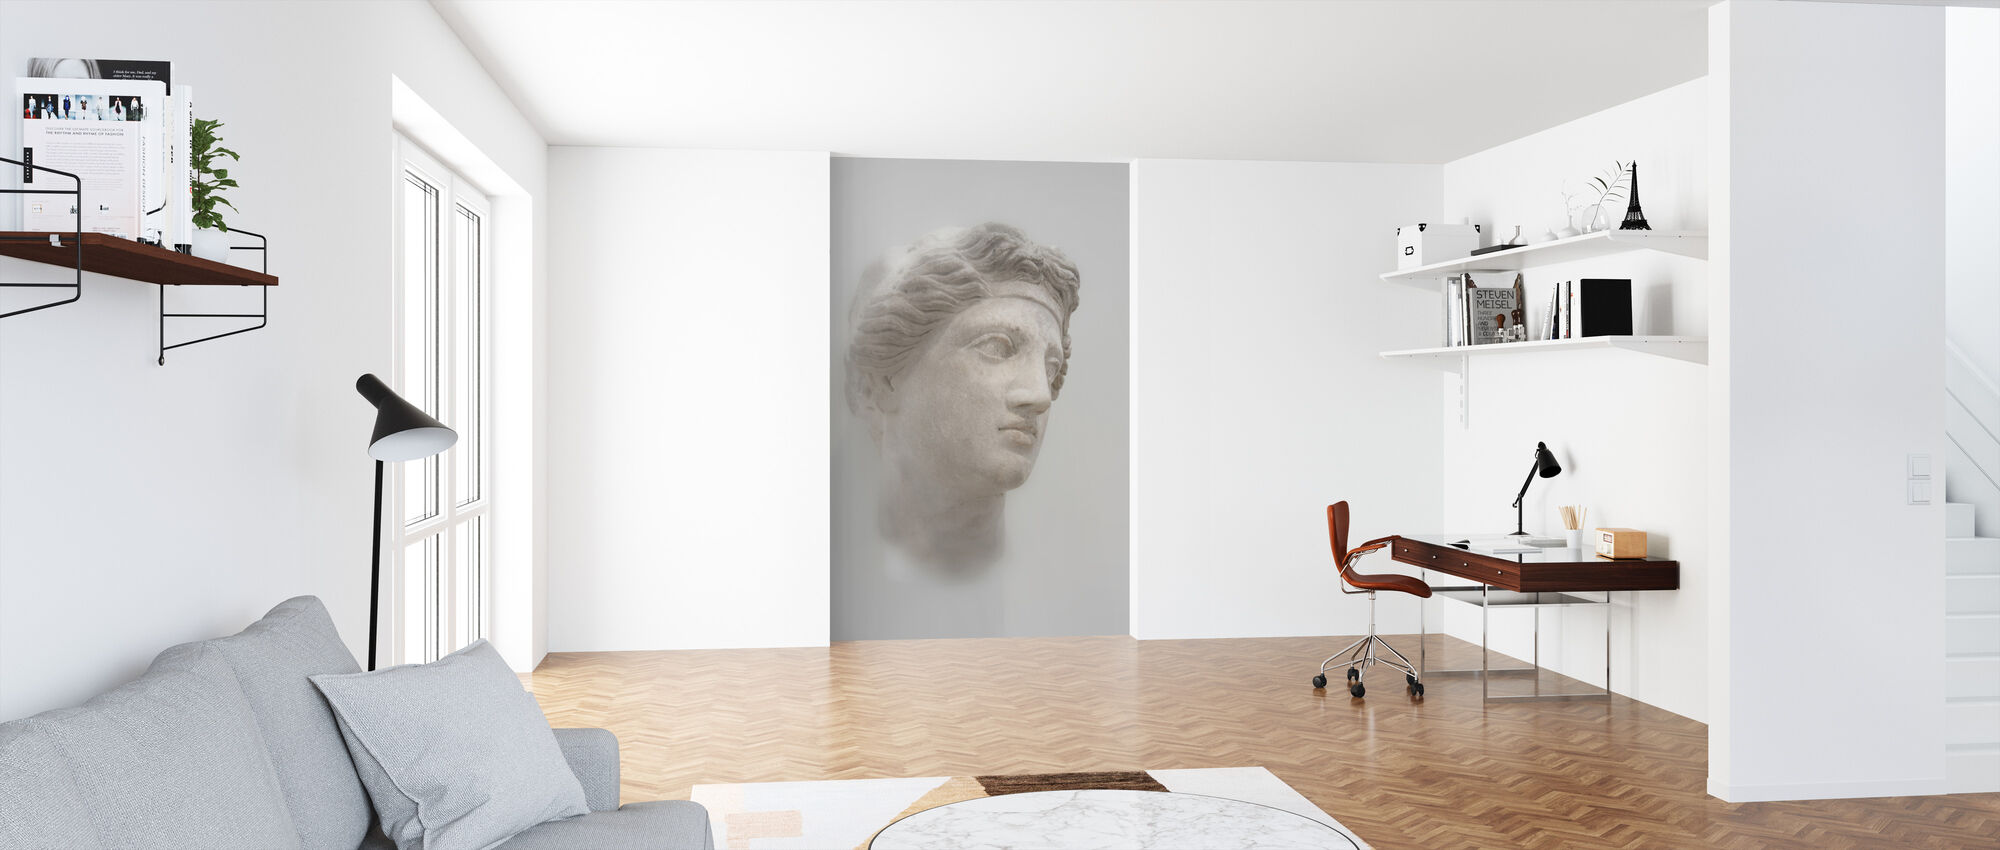 Greek Female Bust - Wallpaper - Office